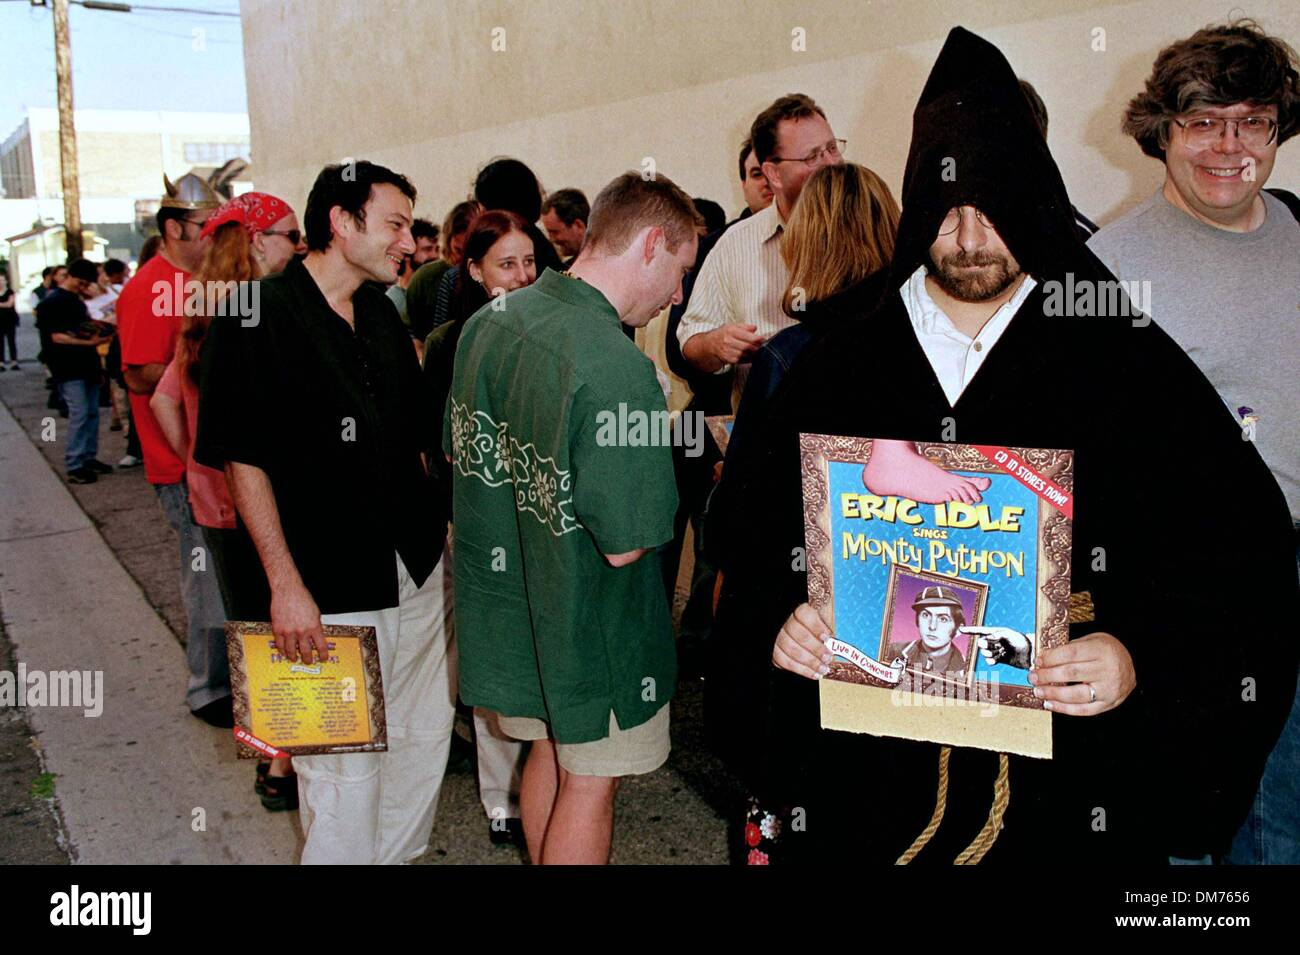 ''Monty Python and the Holy Grail'' Re- Release film premiere.A contest for fans who came dressed as their favorite characters from the film. They were judged by Eric Idle and John Cleese. - Stock Image